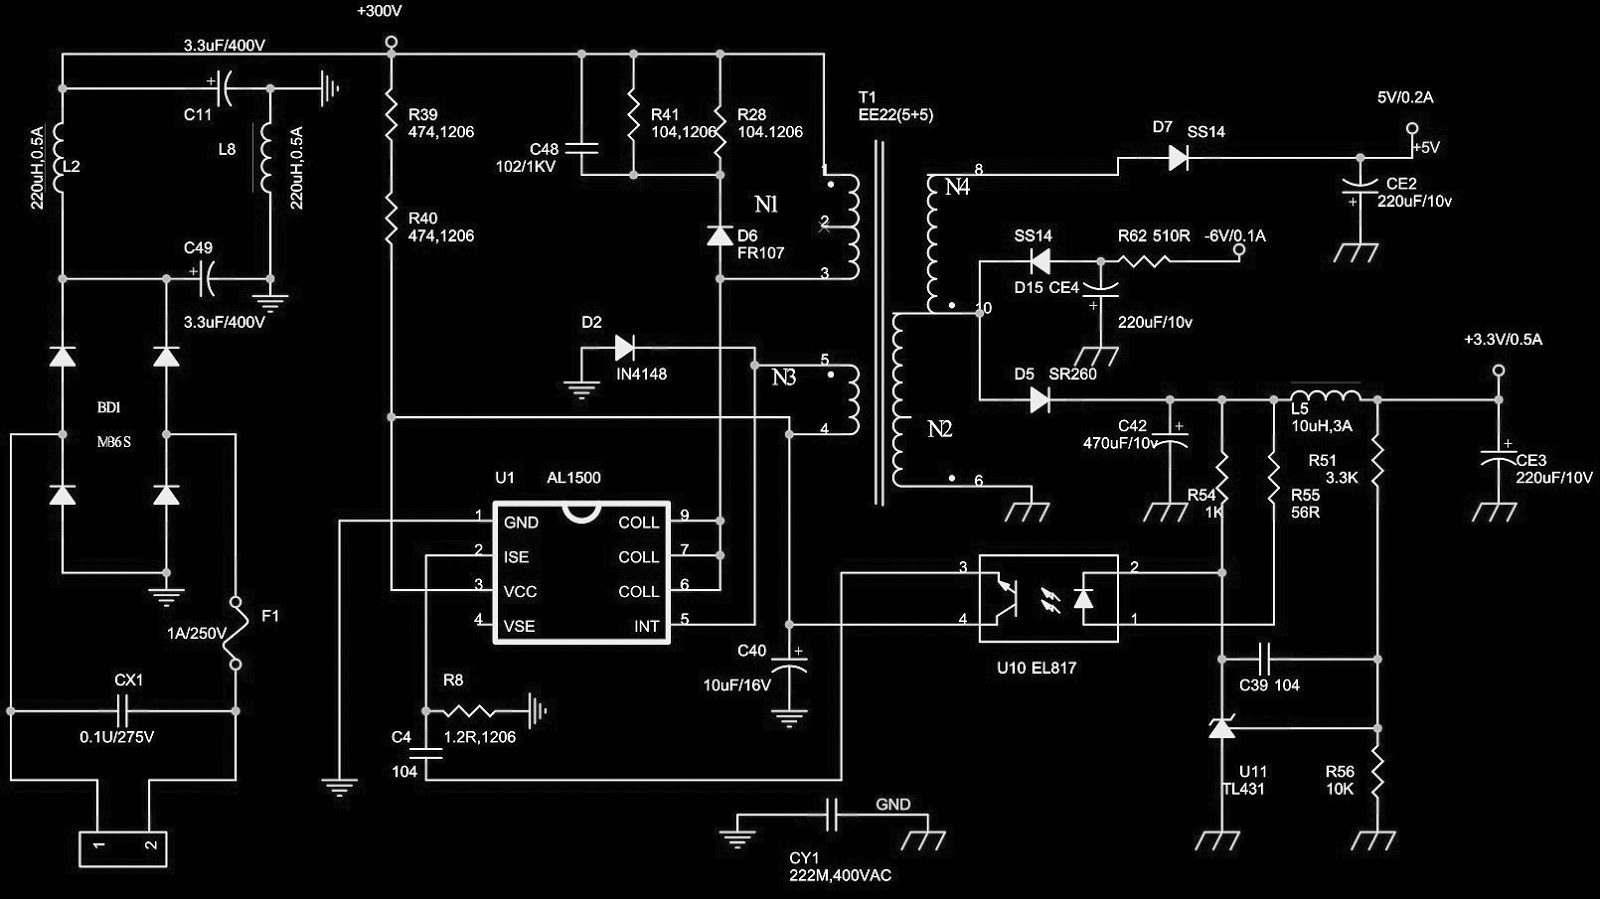 industrial control wiring diagrams #10 Home Electrical Wiring … industrial control wiring diagrams